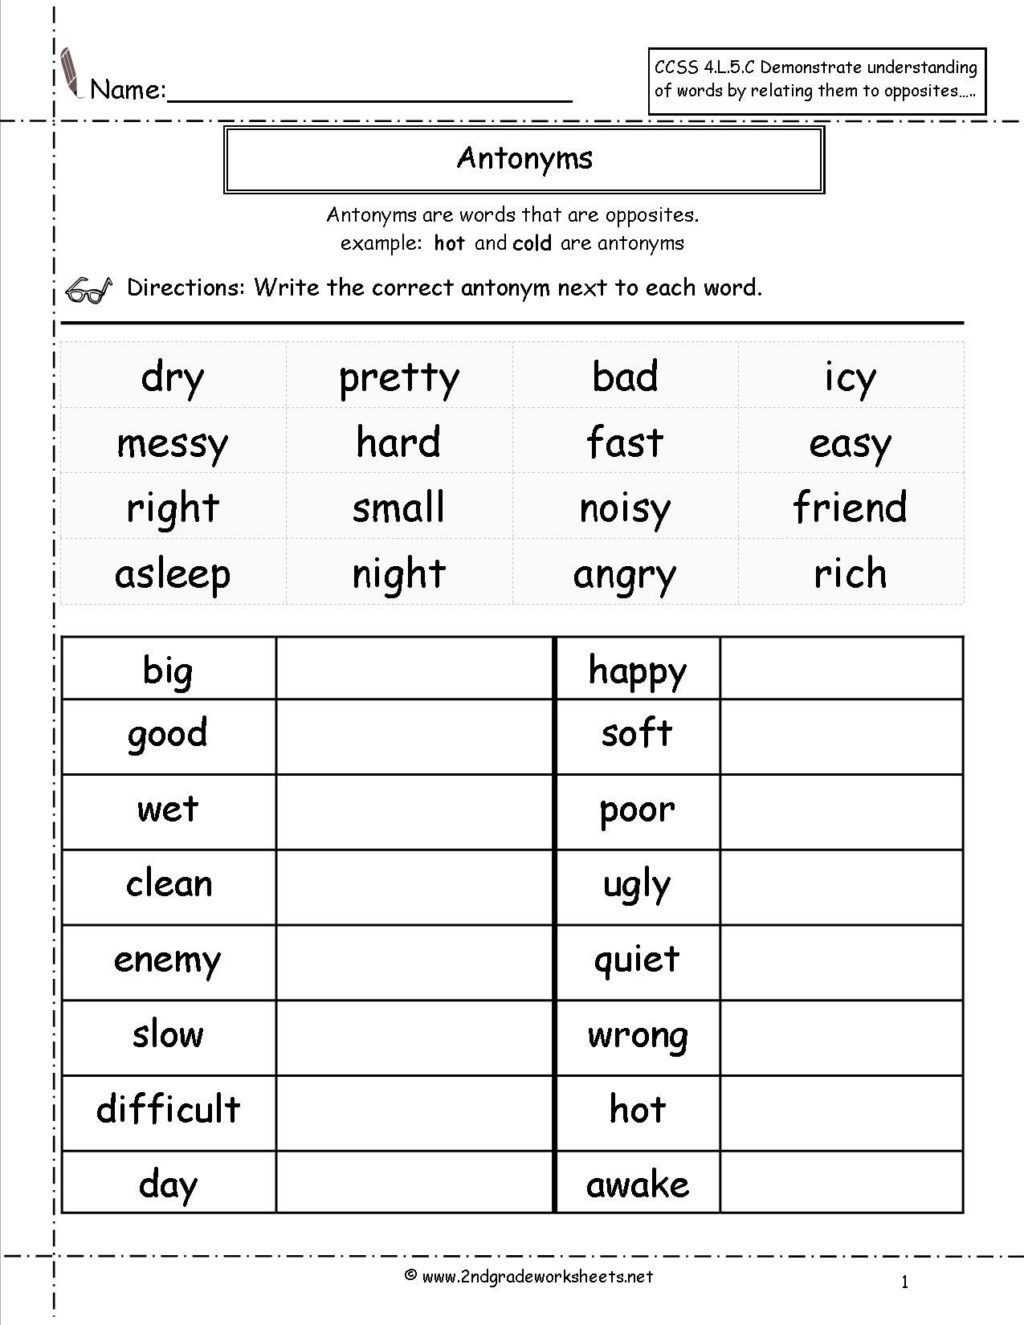 Antonyms Worksheets 3rd Grade Worksheet 2nd Grade Englisheets Second Free Verb 49 2nd